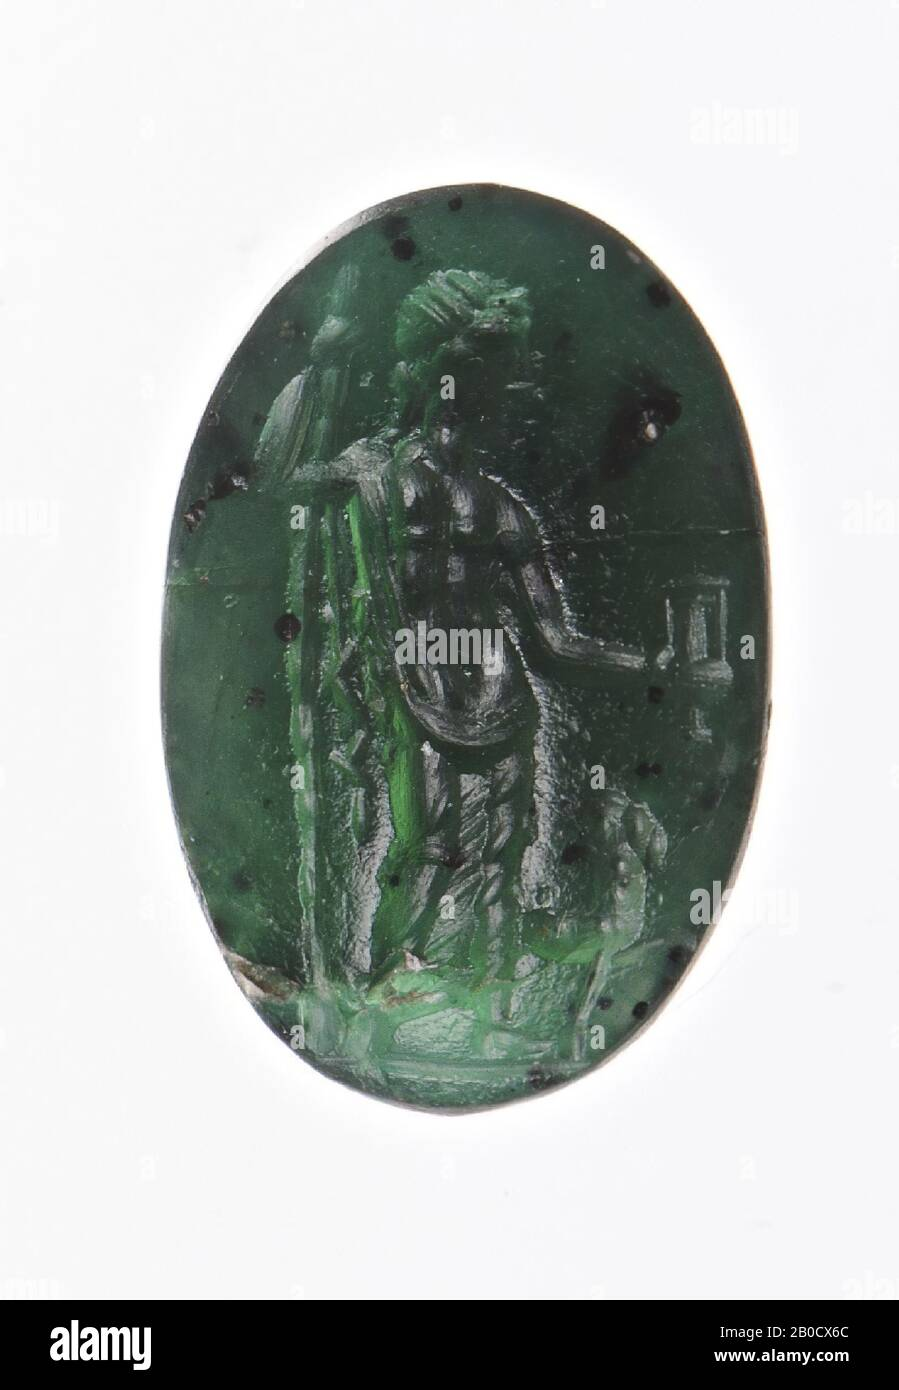 Vz: the god has a himation around his legs, a thyrsos in his right hand and a kantharos upside down in his left hand, he pours wine from the kantharos, with his feet a panther., Gem, intaglio, ringstone, plasma , Color: green, Shape: oval, Machining: front and back convex, Method: body modeling with a rounded drill, detailing with a few short rounded wheel grooves., 10 x 7 mm, D. 4 mm, 1st century n. Chr. 1-100 AD Stock Photo